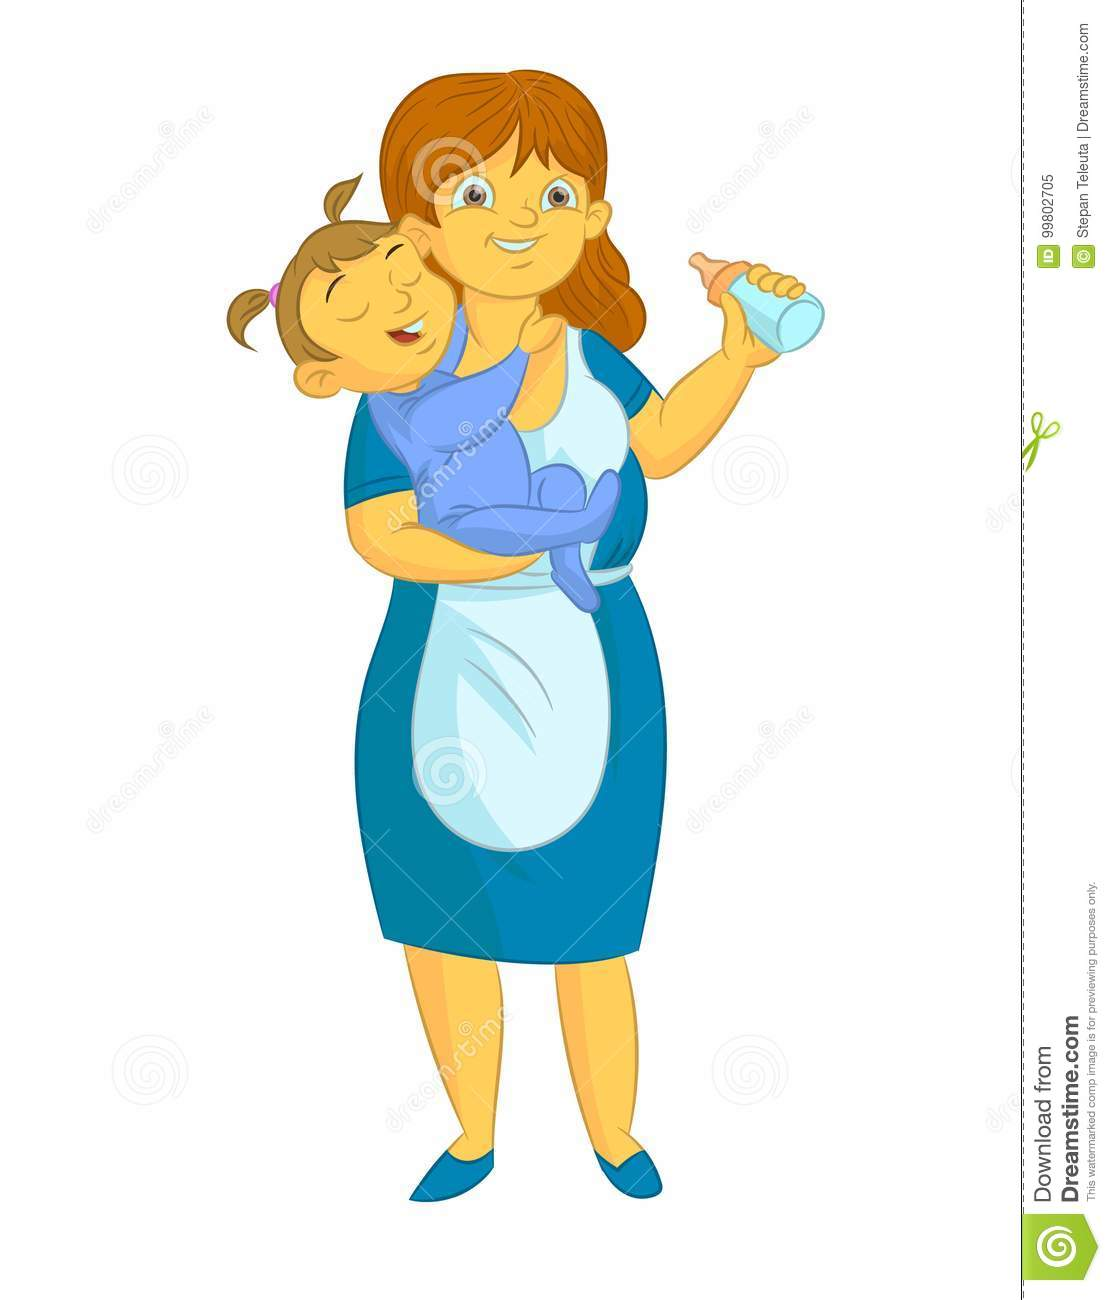 nanny stock illustrations 1 262 nanny stock illustrations vectors rh dreamstime com babysitter clip art babysitting clip art images